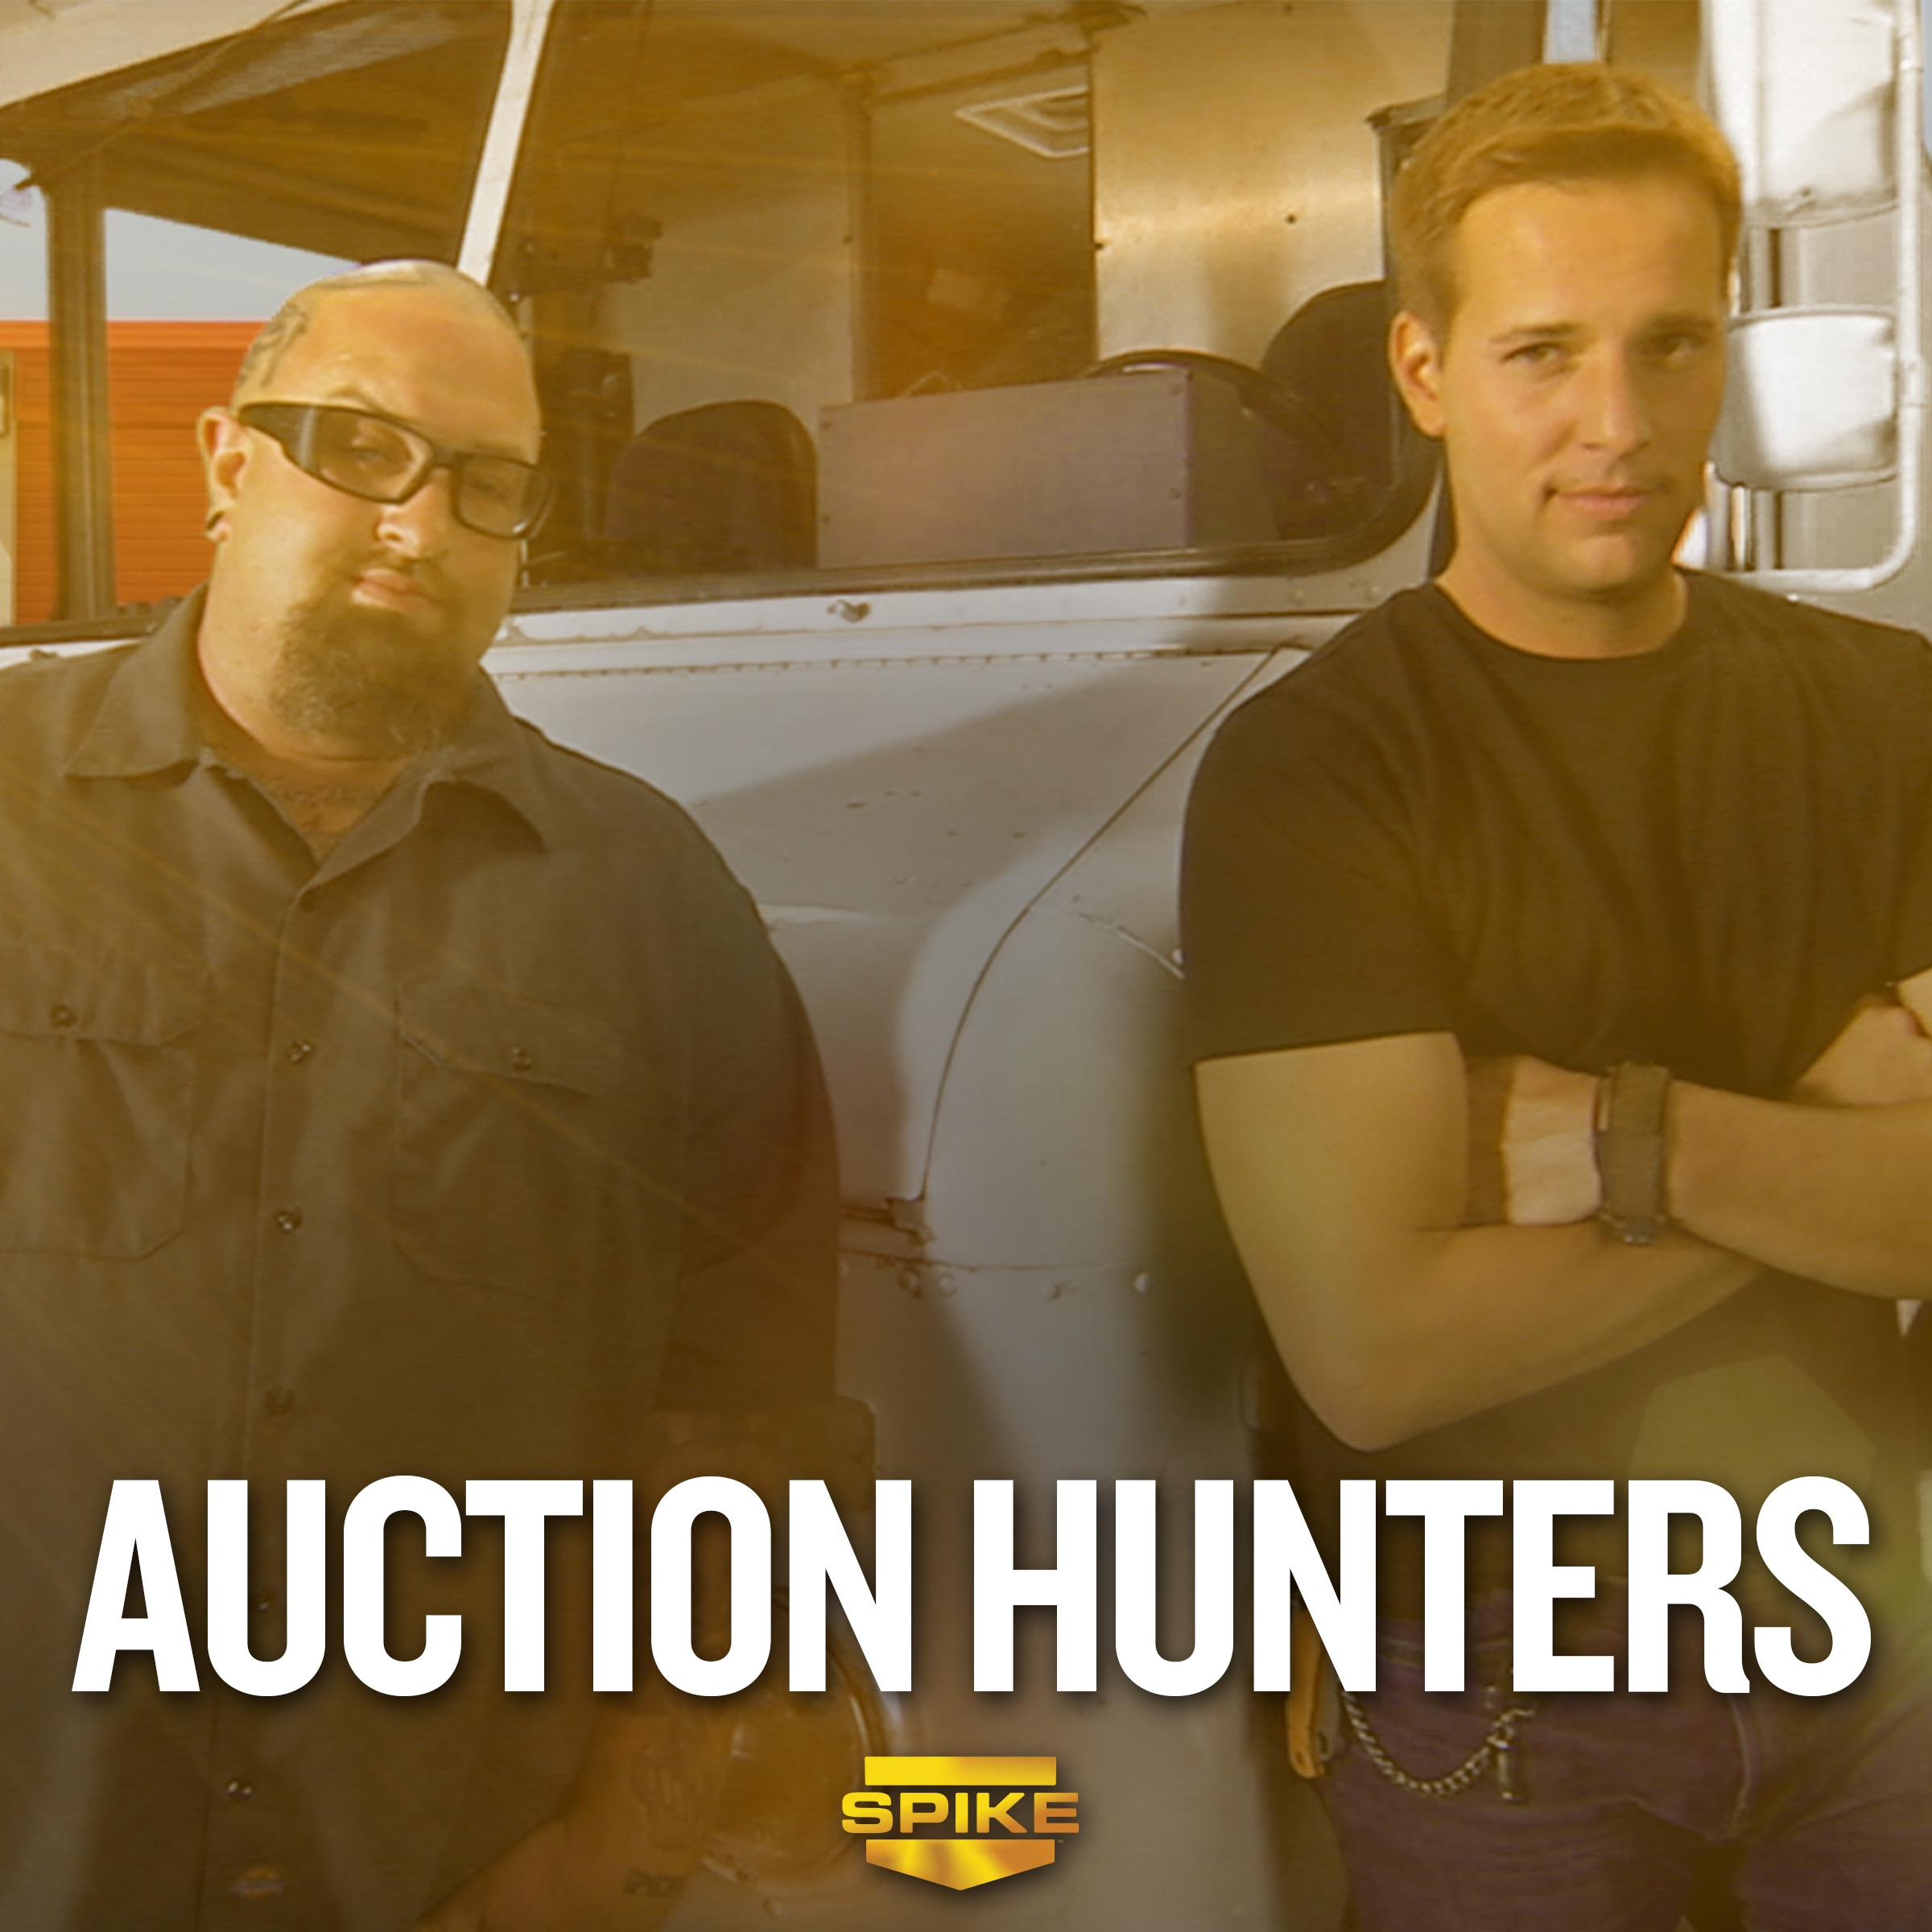 auction hunters season 2